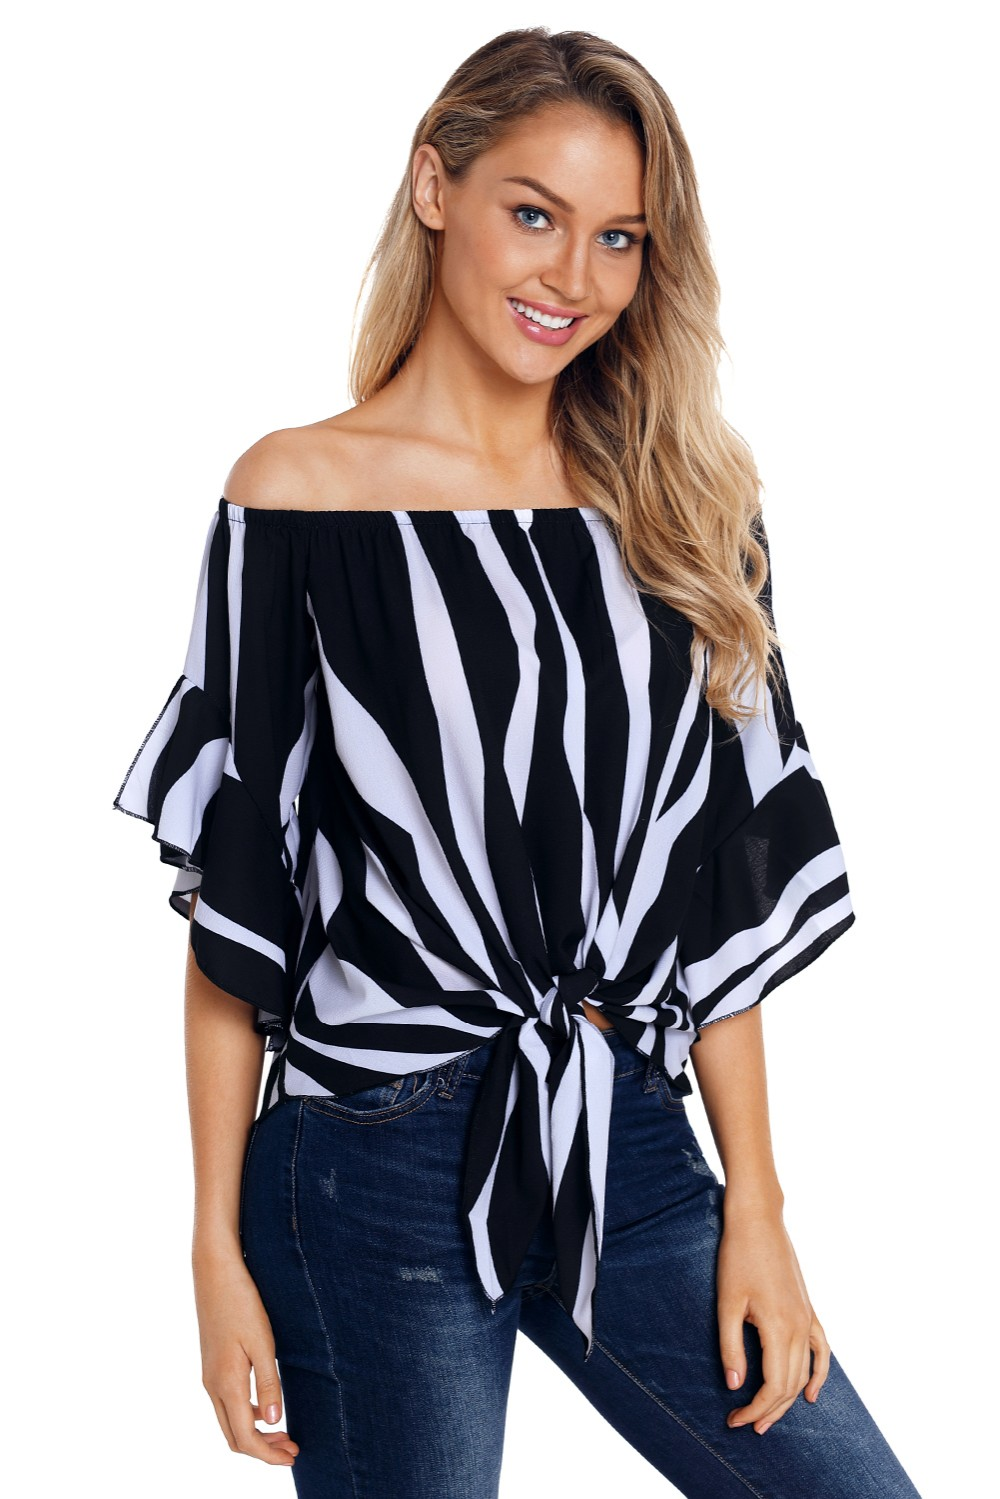 6972596d5ccda0 Women Striped Off Shoulder Bell Sleeve Shirt Tie Knot Casual Blouses Tops